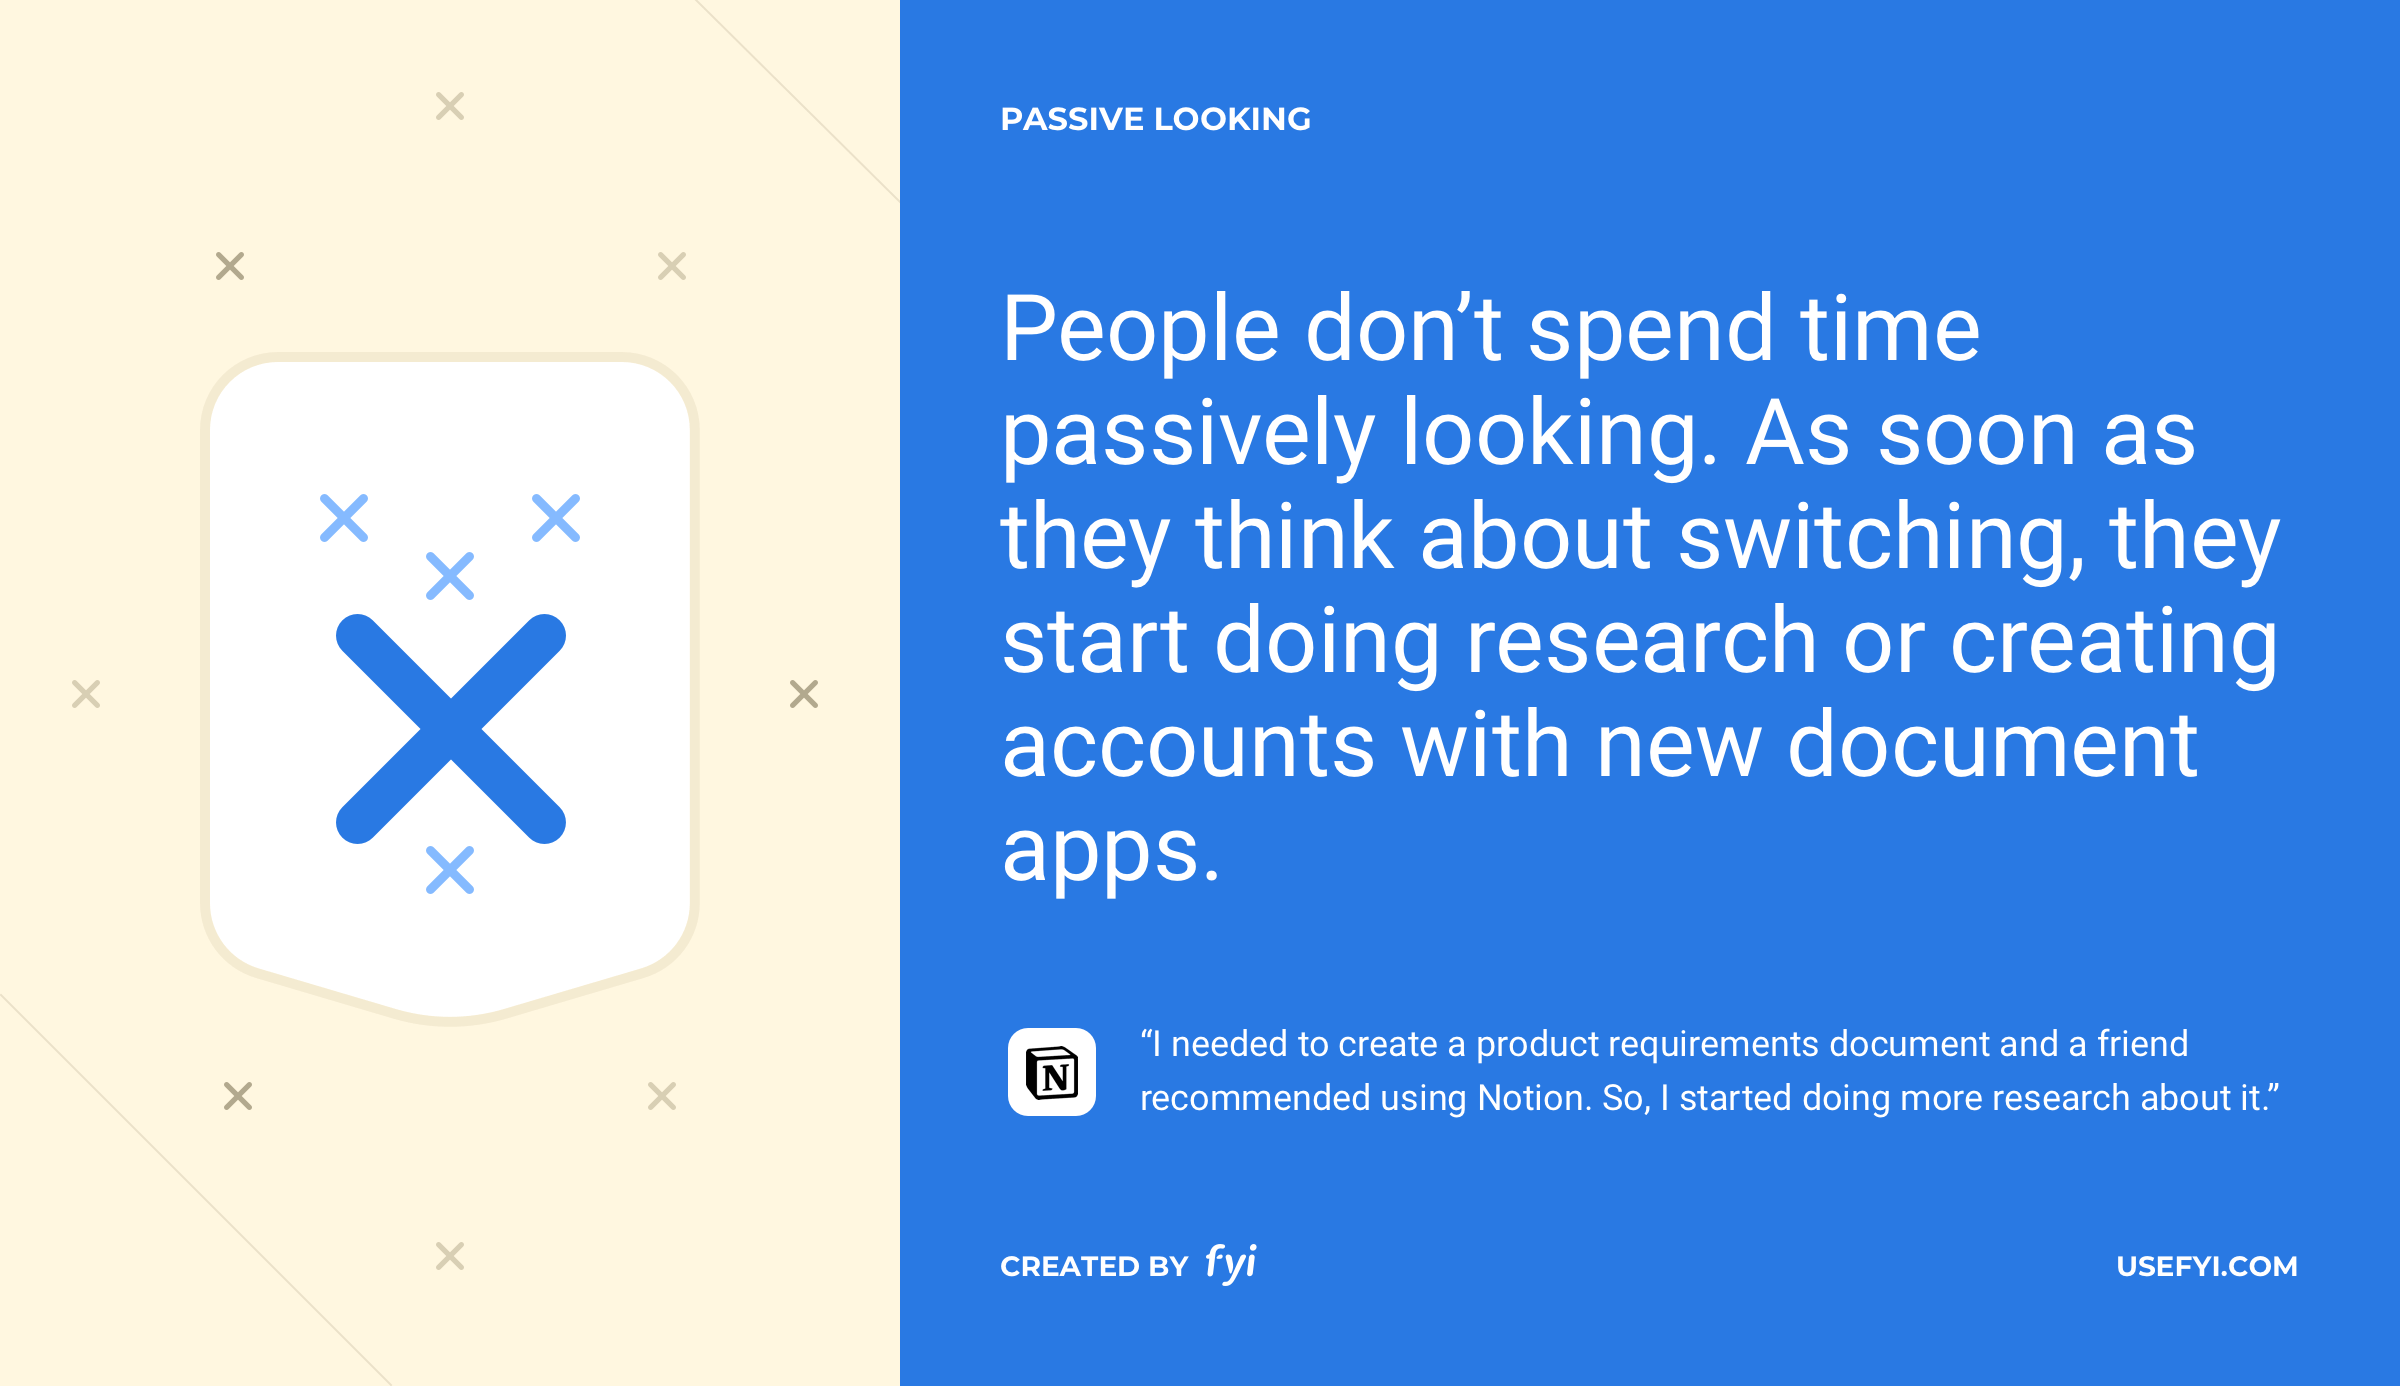 passive looking document apps